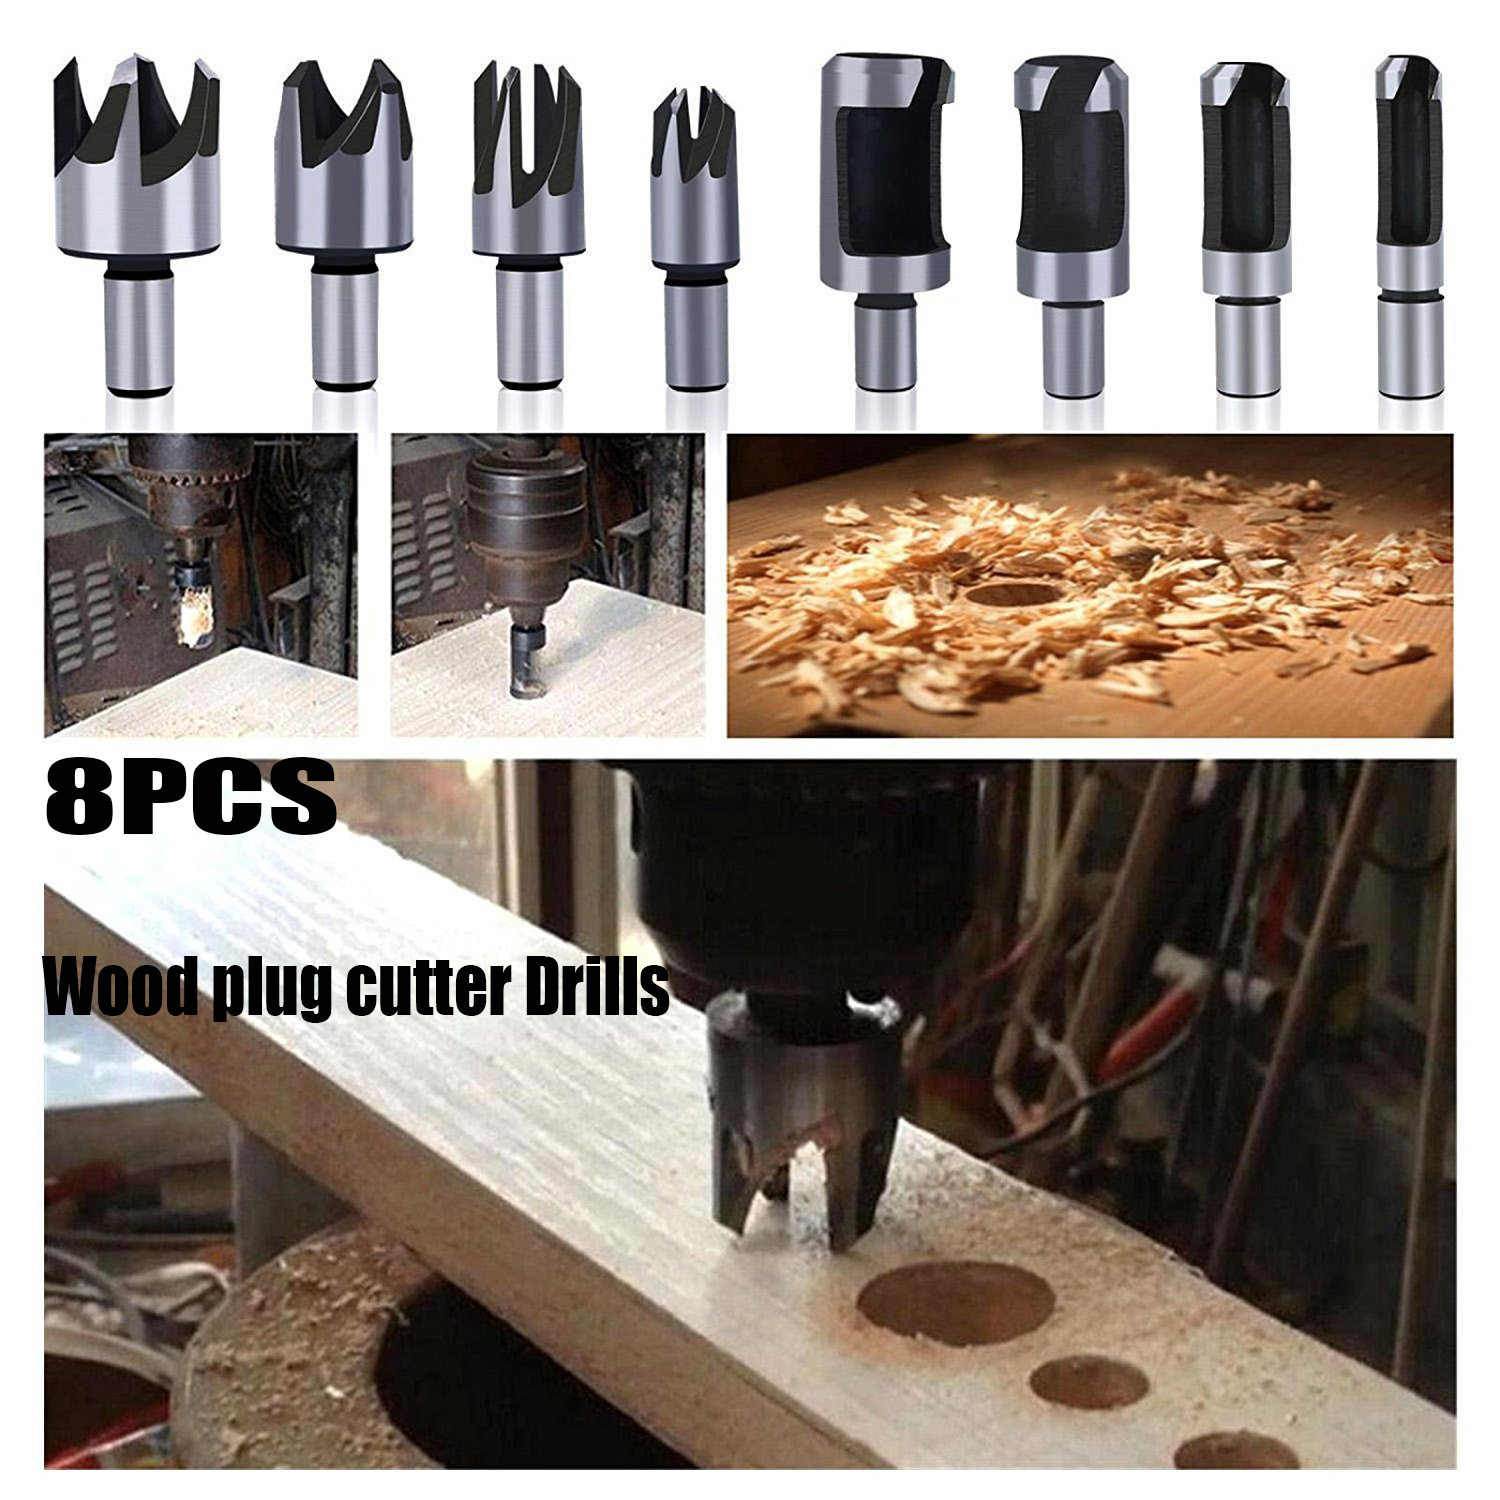 8pcs Wood Plug Cutter Drill Bit Set Straight And Tapered Taper 5/8